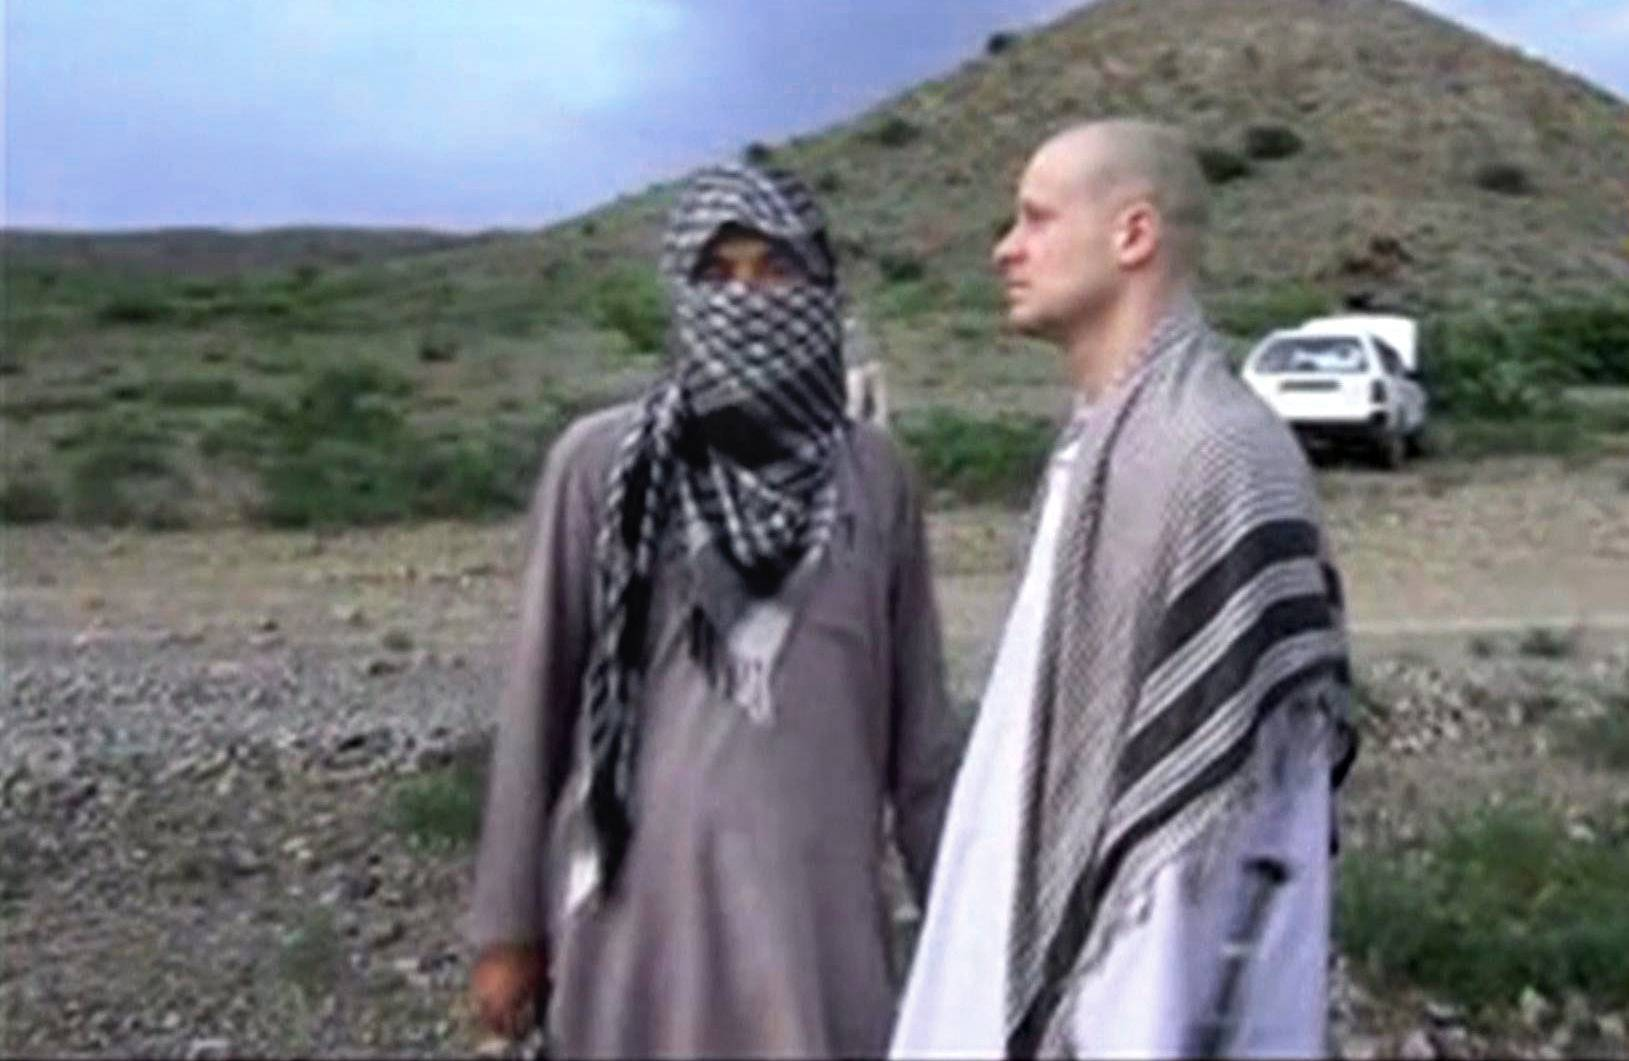 The Taliban said Friday, June 6, 2014, that Sgt. Bowe Bergdahl was treated well during the five years they held him captive and was even allowed to play soccer with the men holding him.